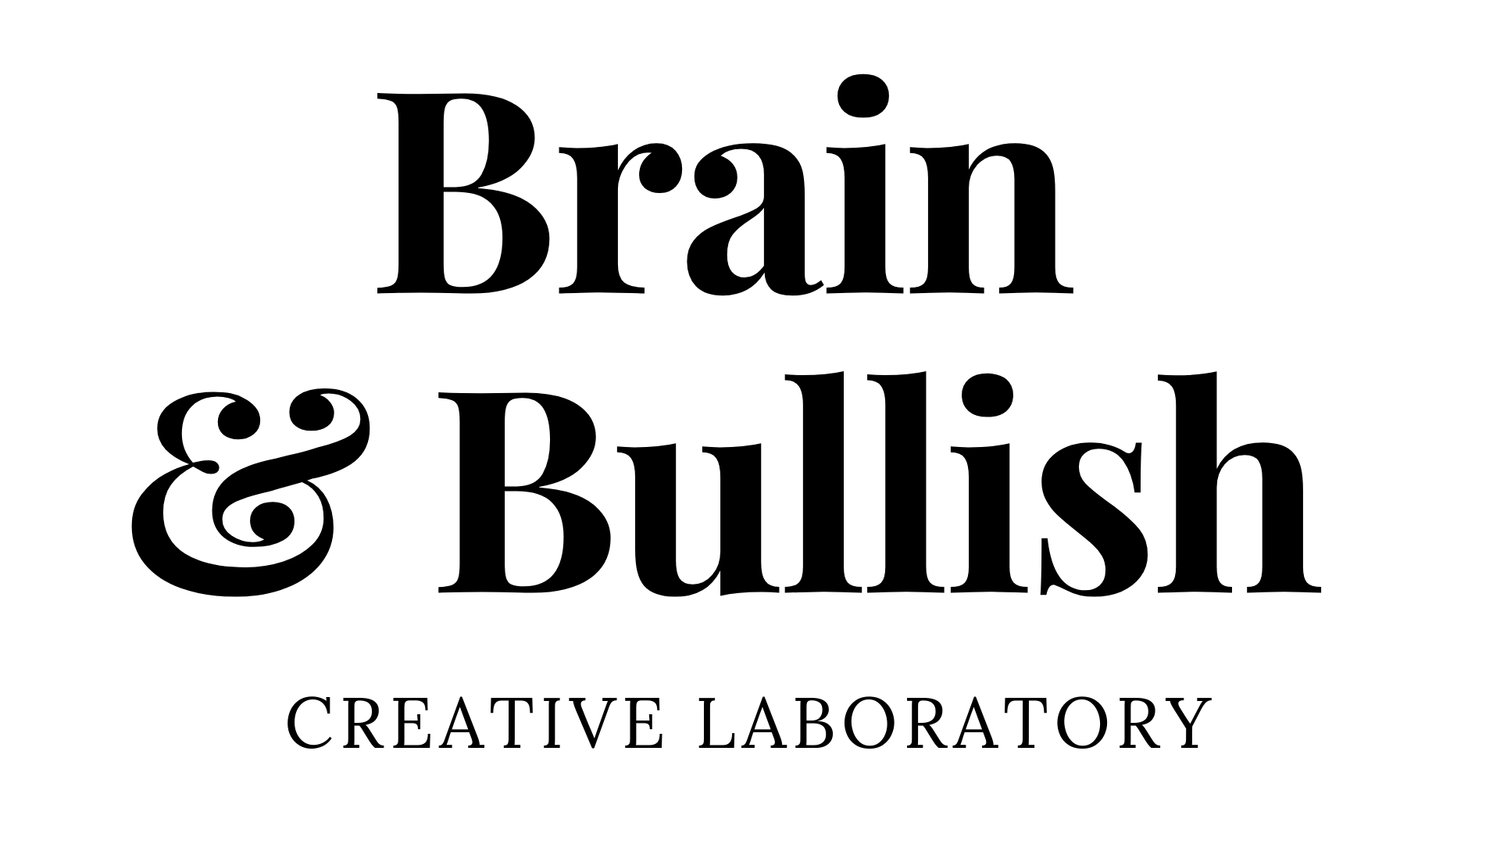 Brain & Bullish